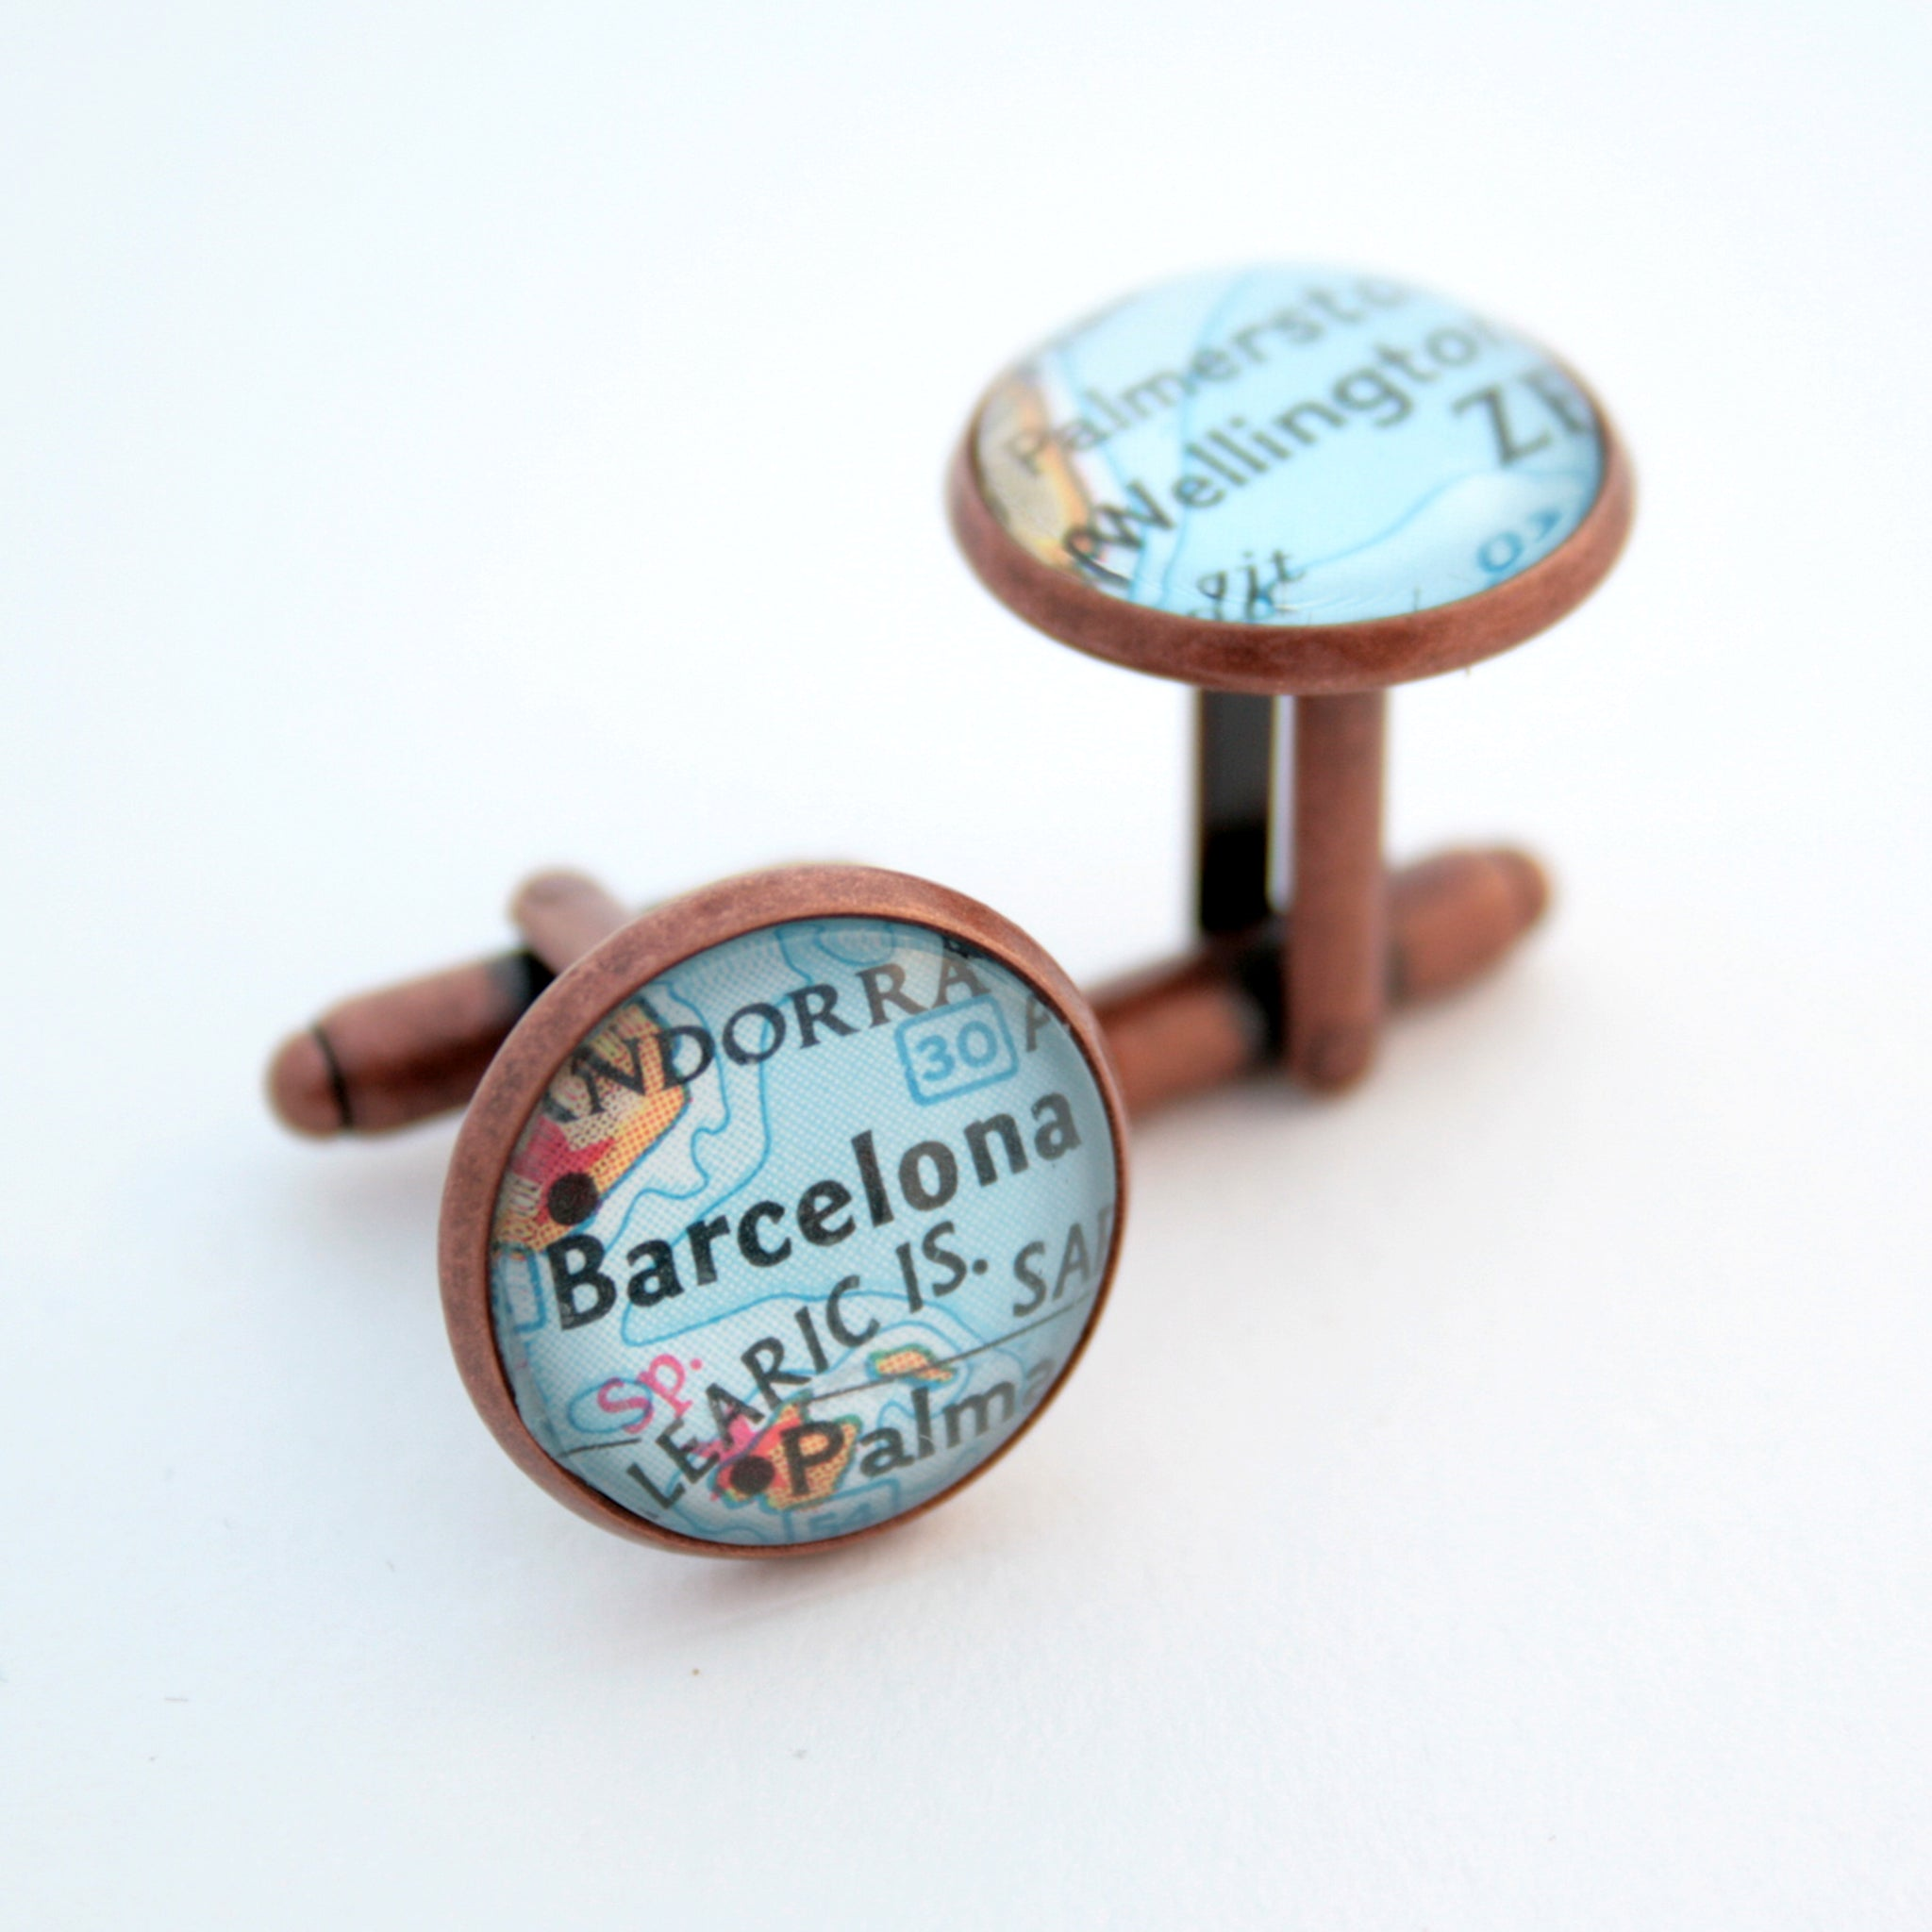 cufflinks personalised with map locations in antique copper finish